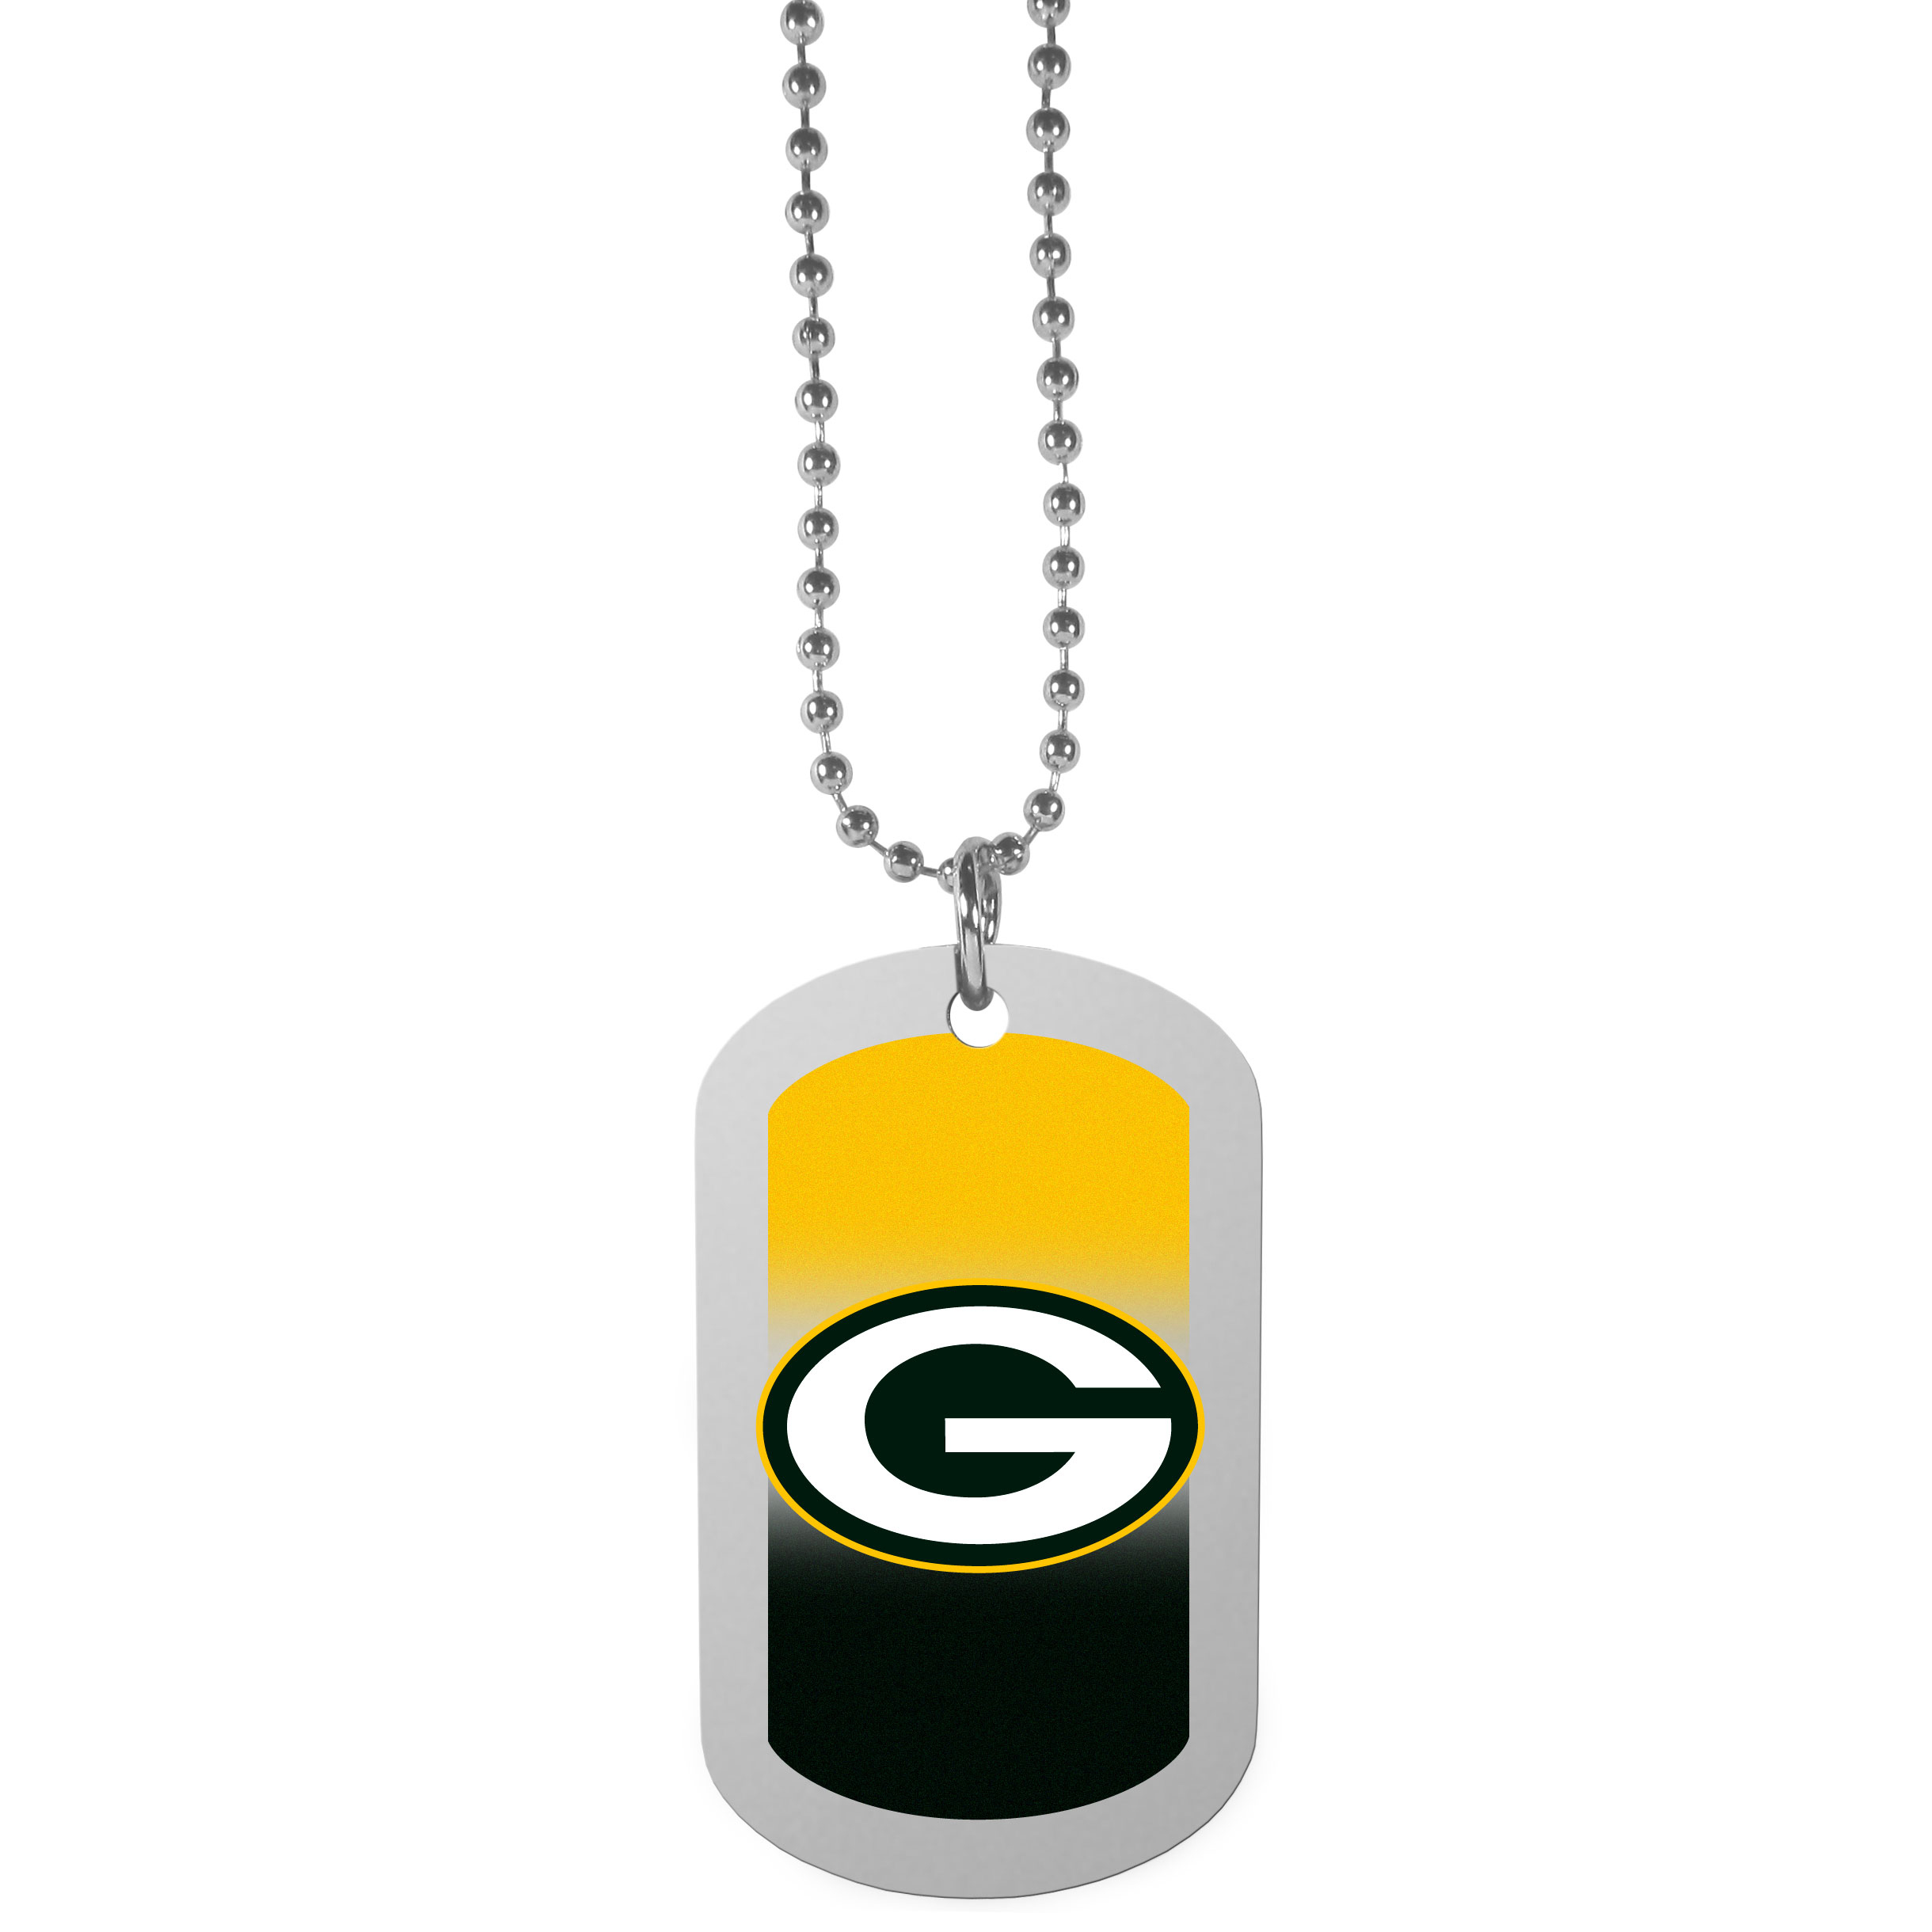 Green Bay Packers Team Tag Necklace - Dog tag necklaces are a fashion statement that is here to stay. The sporty version of the classic tag features a gradient print in team colors featuring a full color team logo over a high polish tag to create a bold and sporty look. The tag comes on a 26 inch ball chain with a ball and joint clasp. Any Green Bay Packers would be proud to wear this attractive fashion accessory.